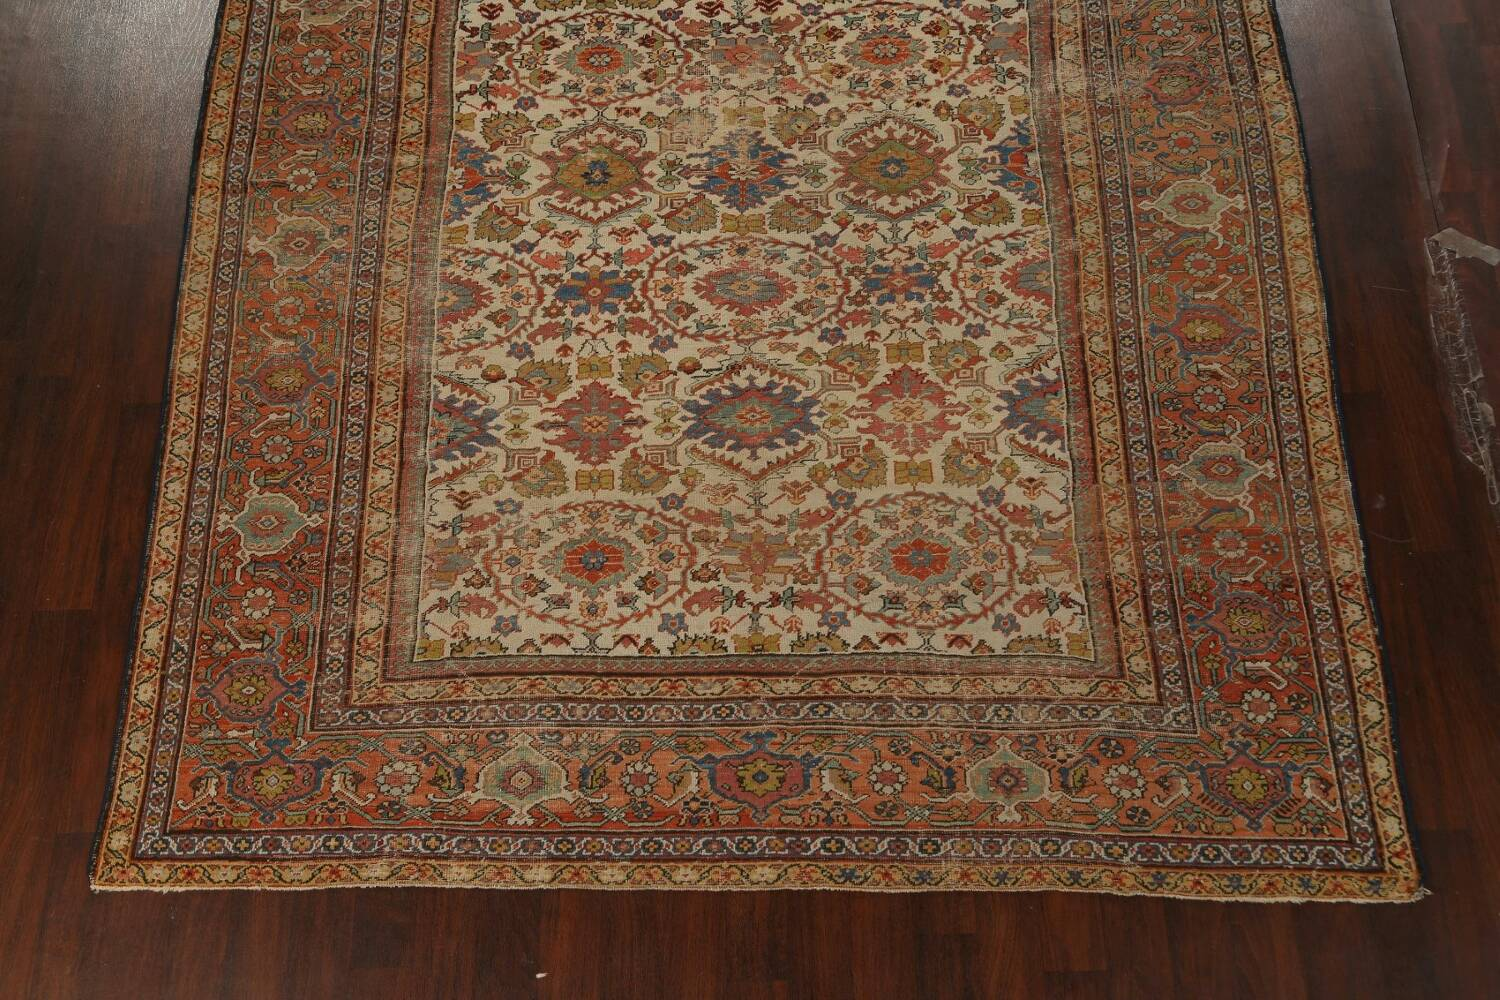 Pre-1900 Antique Vegetable Dye Sultanabad Persian Area Rug 9x12 image 8